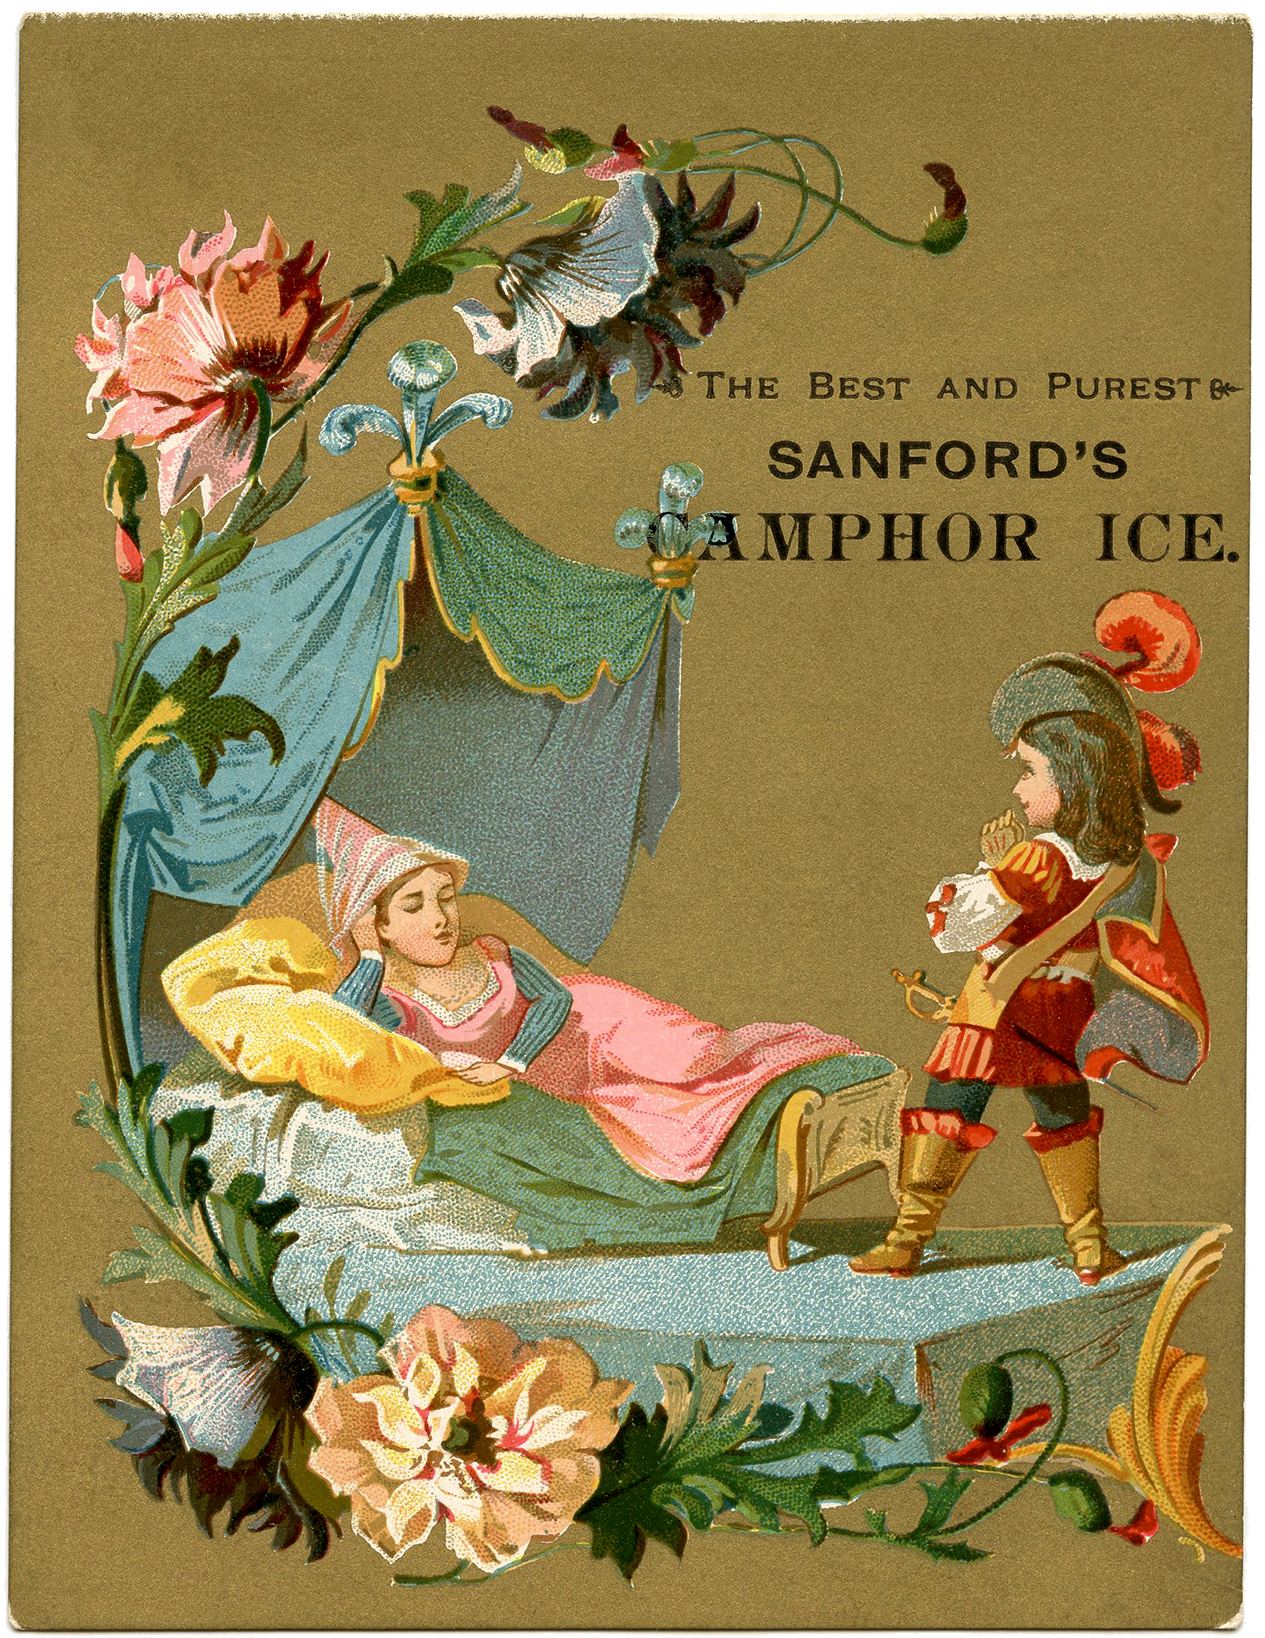 Vintage Sleeping Beauty Illustration - The Graphics Fairy